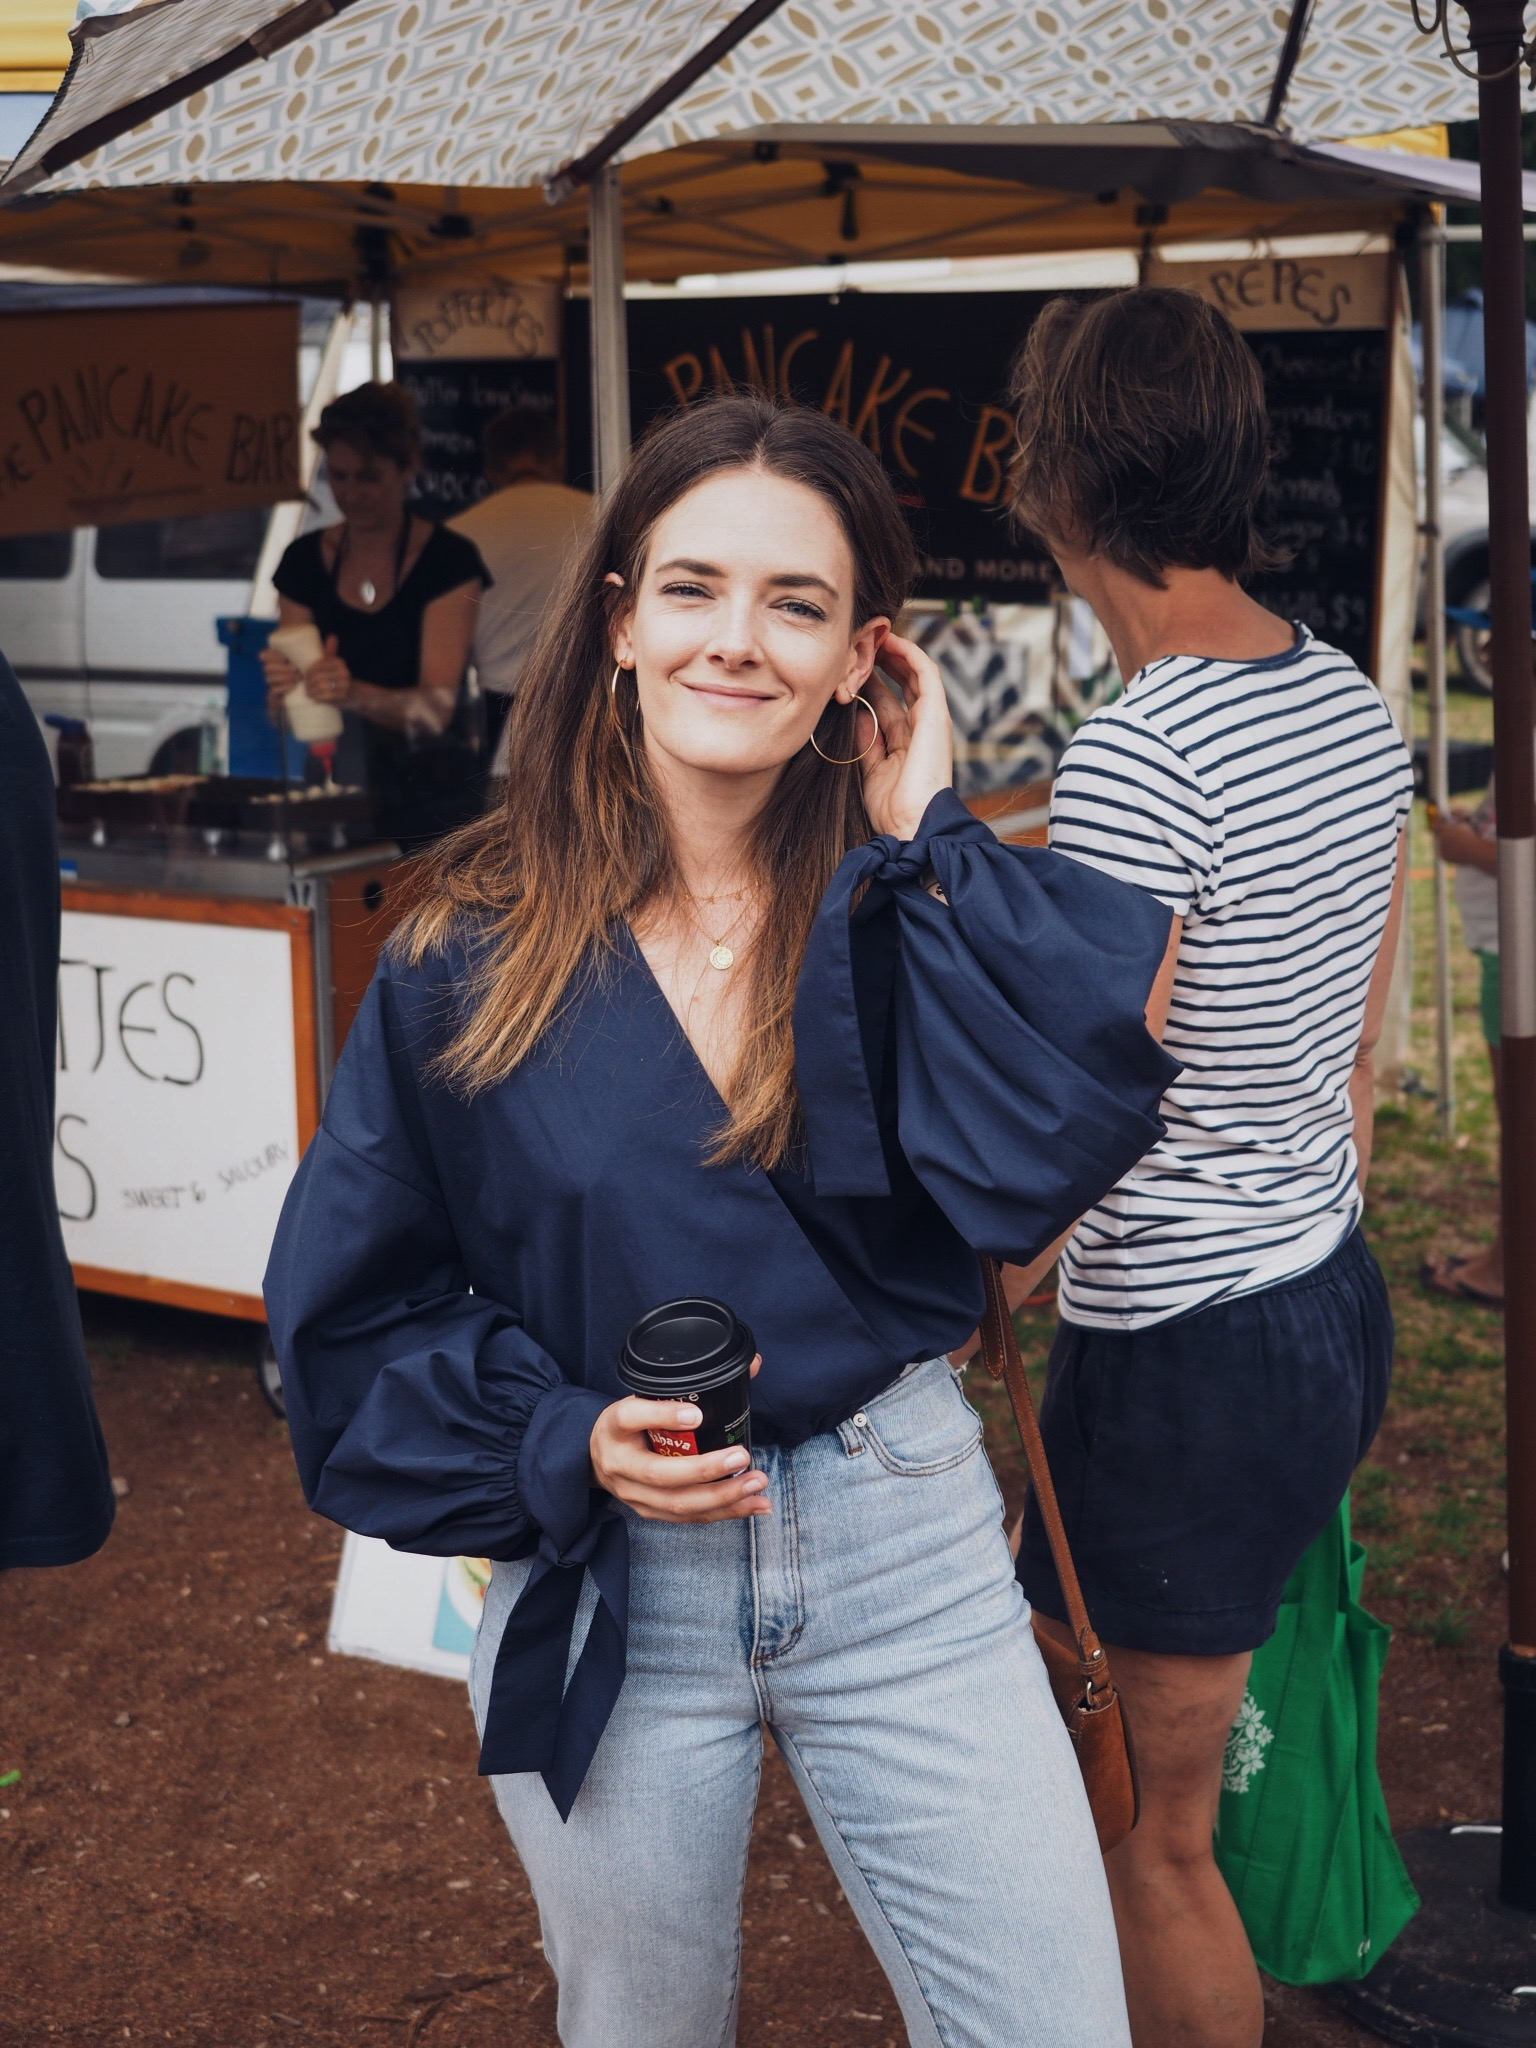 Weekend in Margaret River at the farmers markets